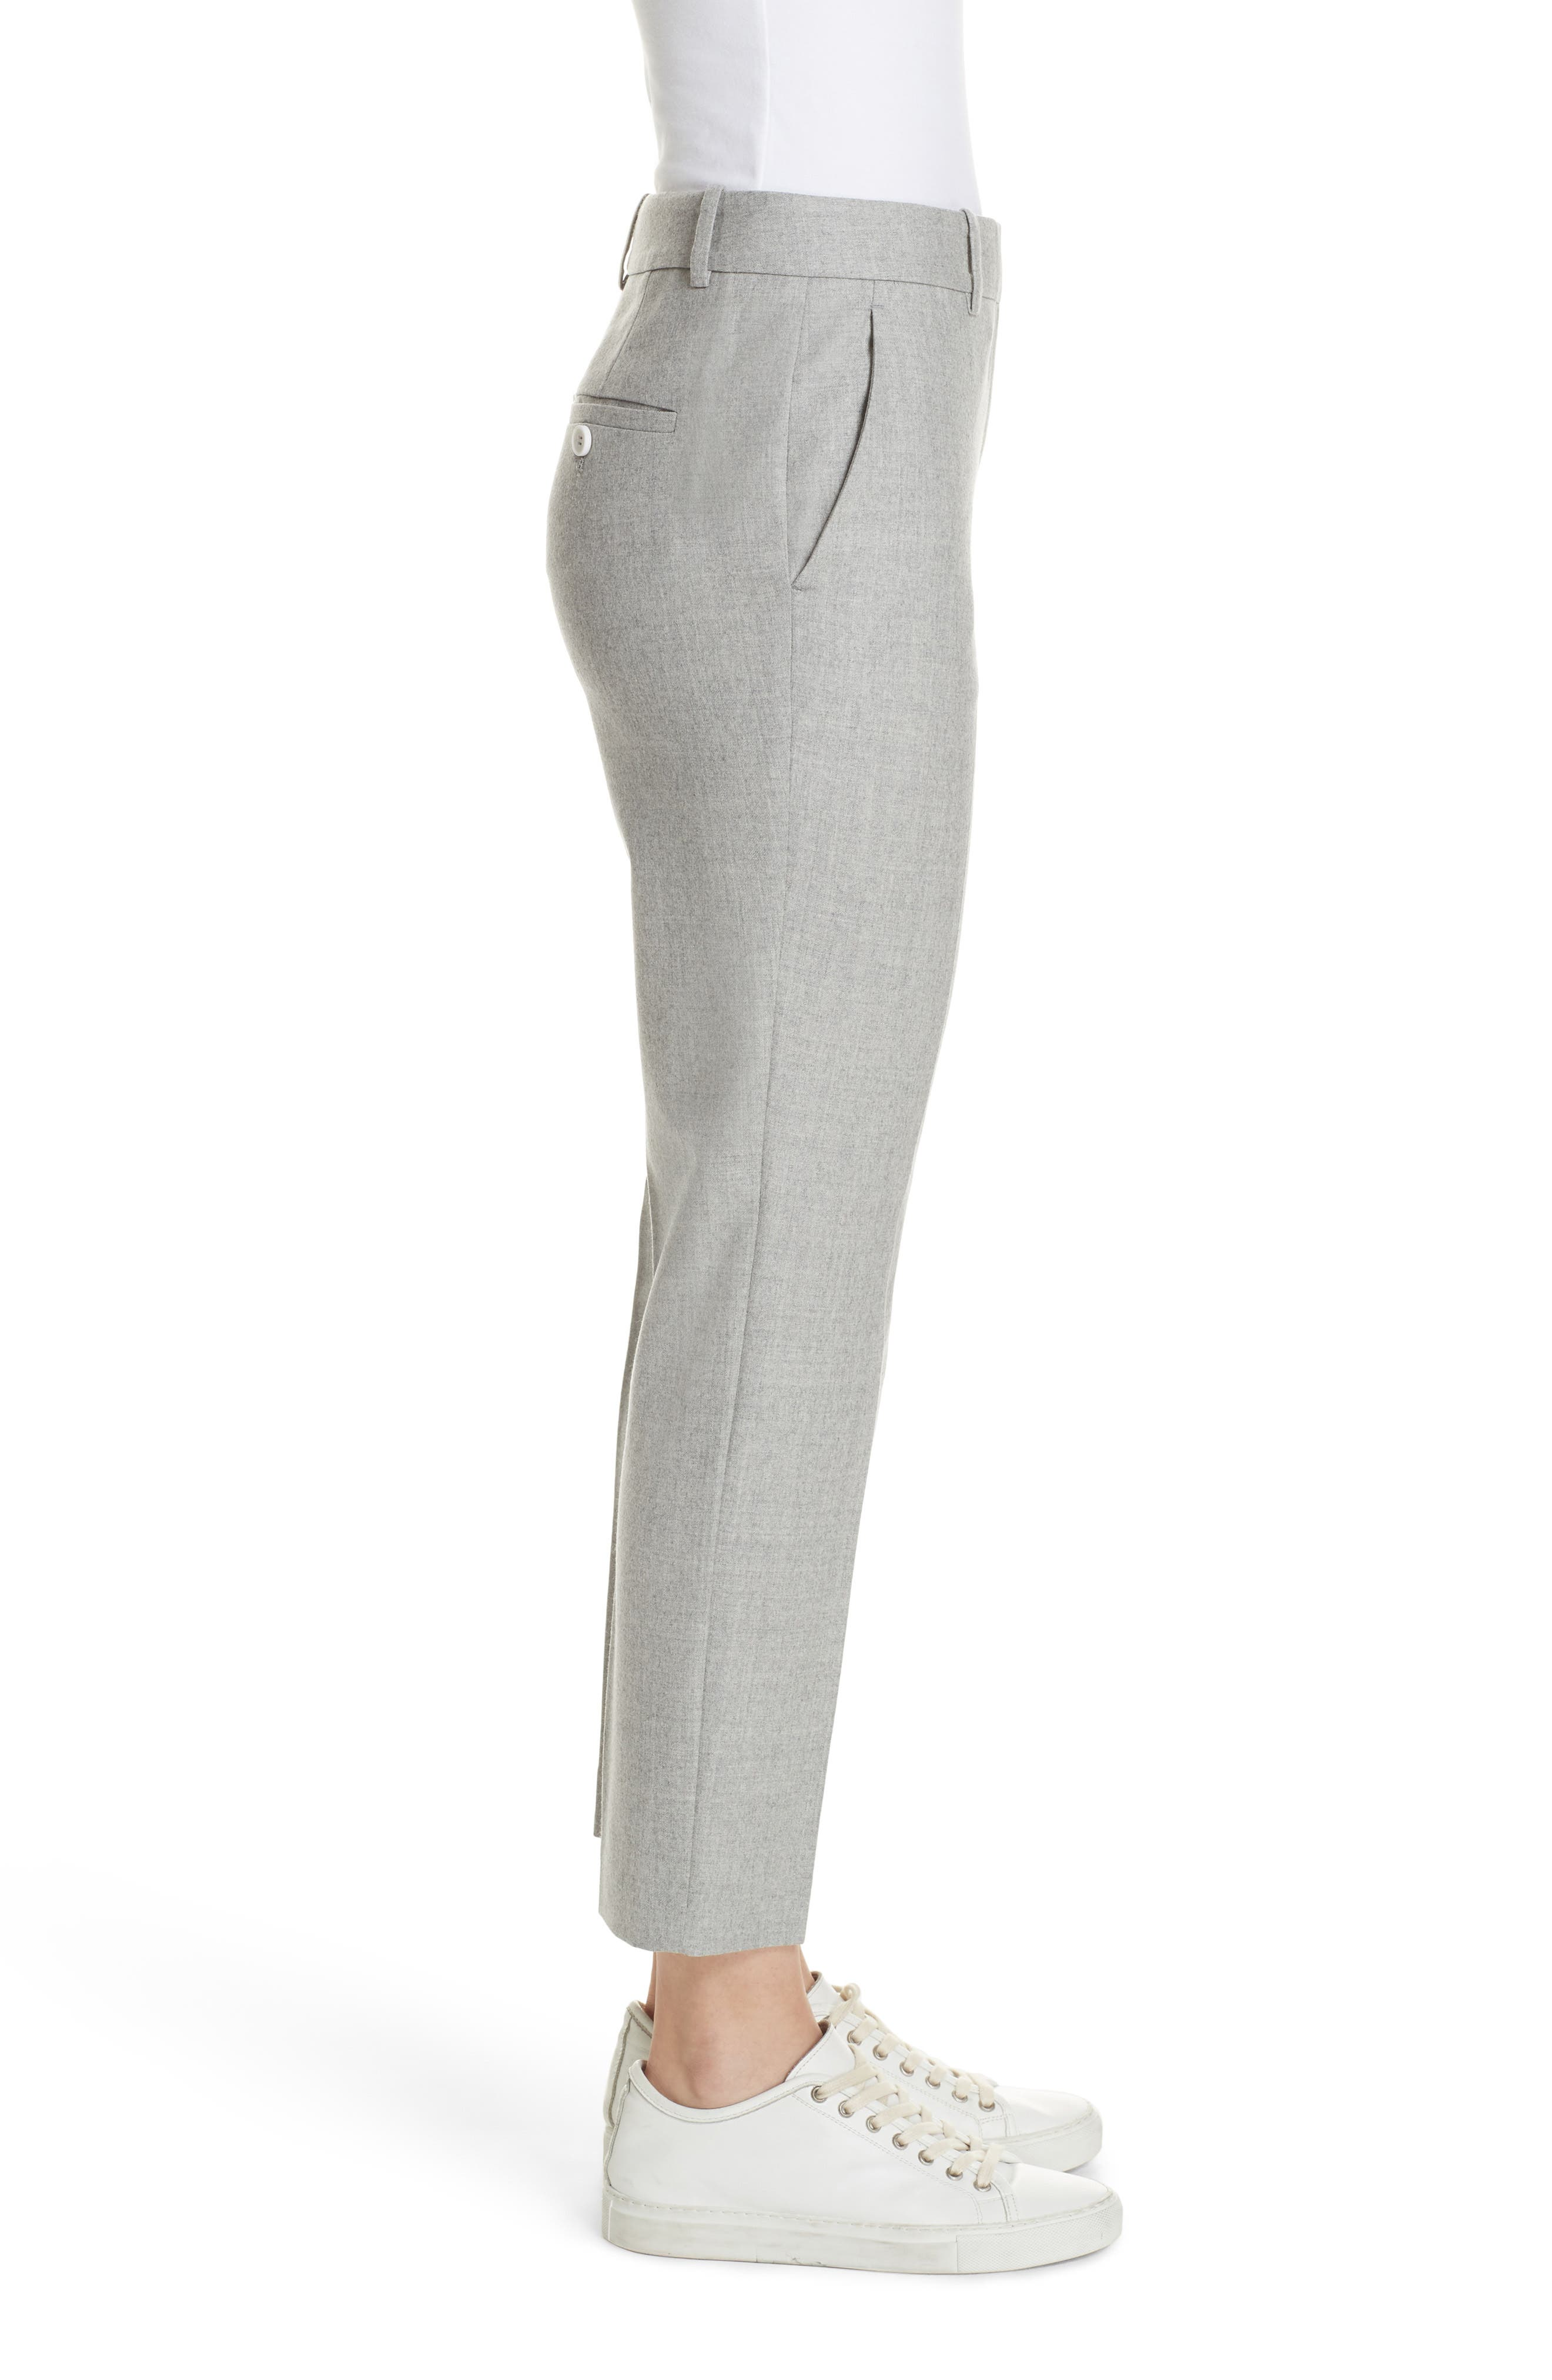 Treeca Flannel Ankle Pants,                             Alternate thumbnail 3, color,                             PALE GREY